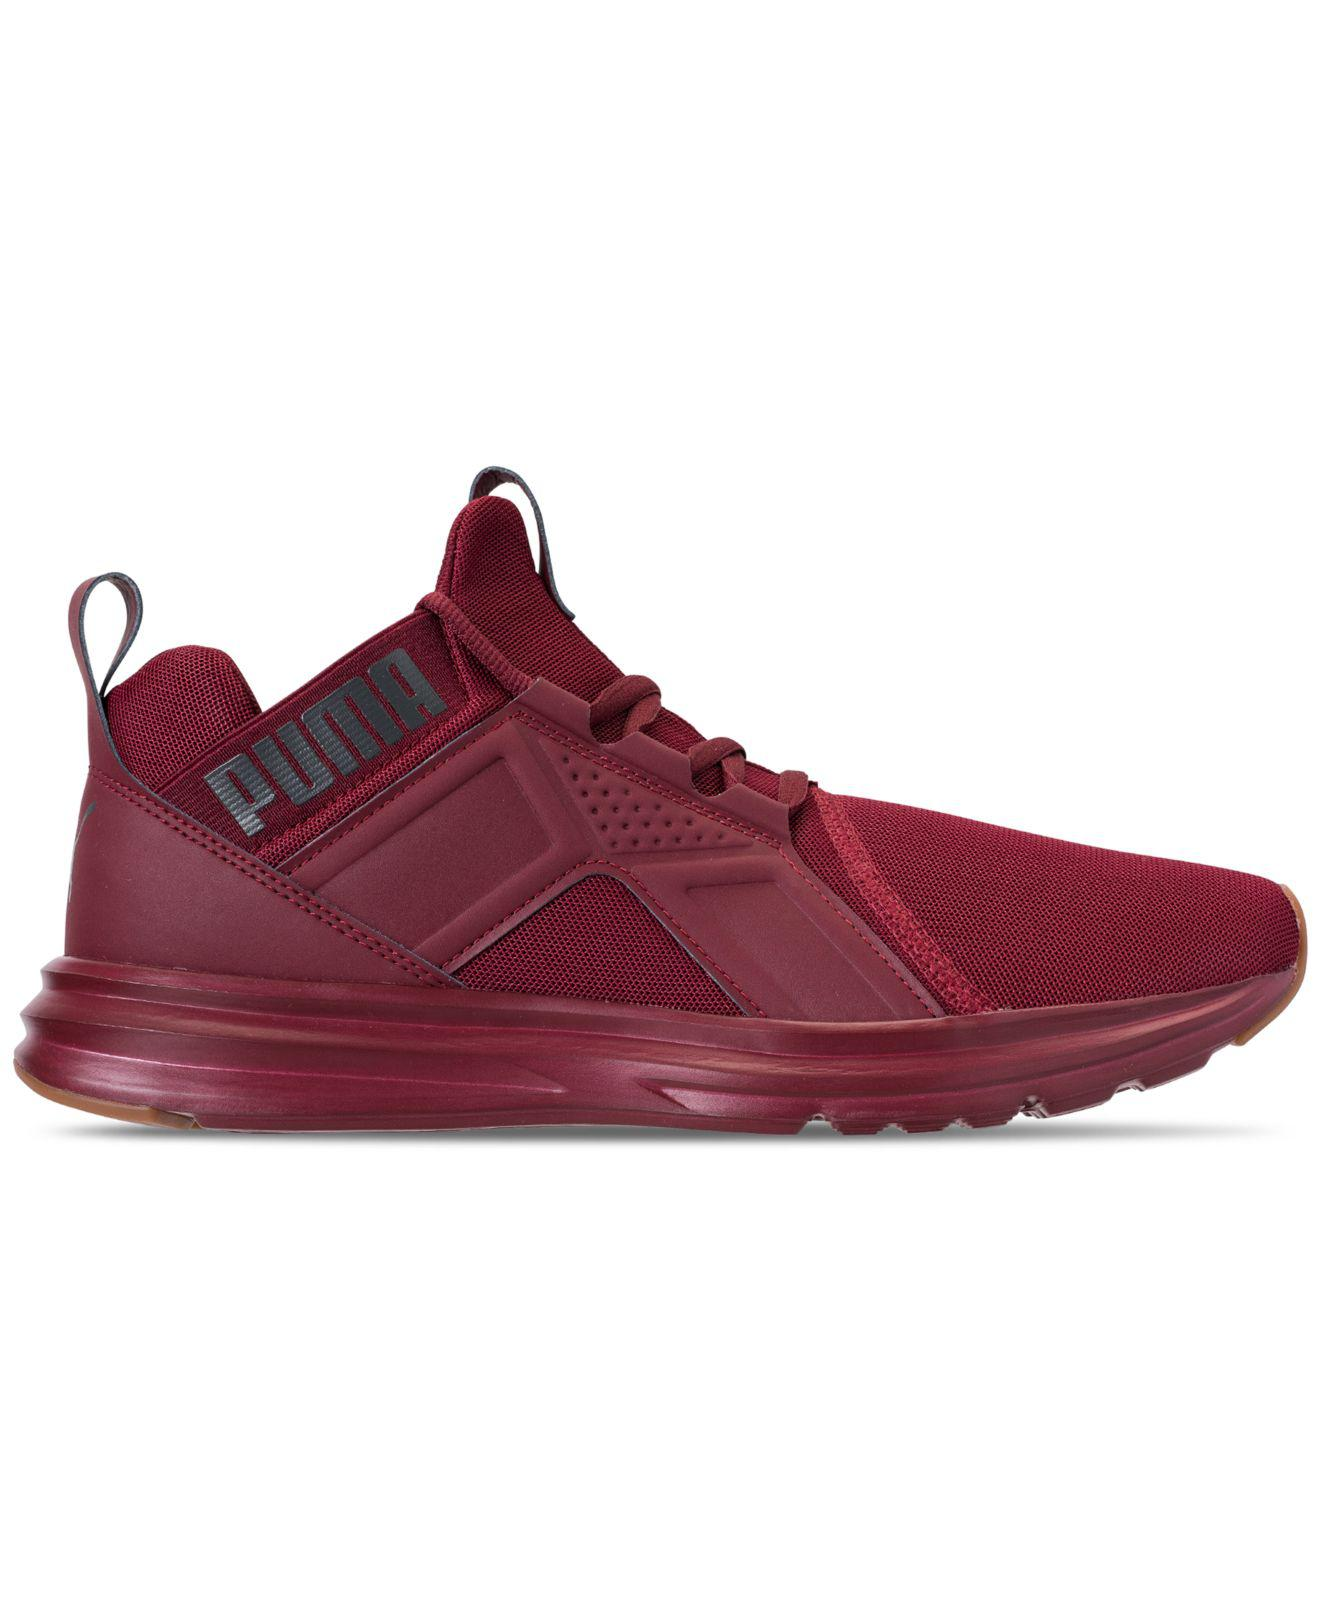 5f4248a38fc011 PUMA - Red Enzo Premium Mesh Casual Sneakers From Finish Line for Men -  Lyst. View fullscreen